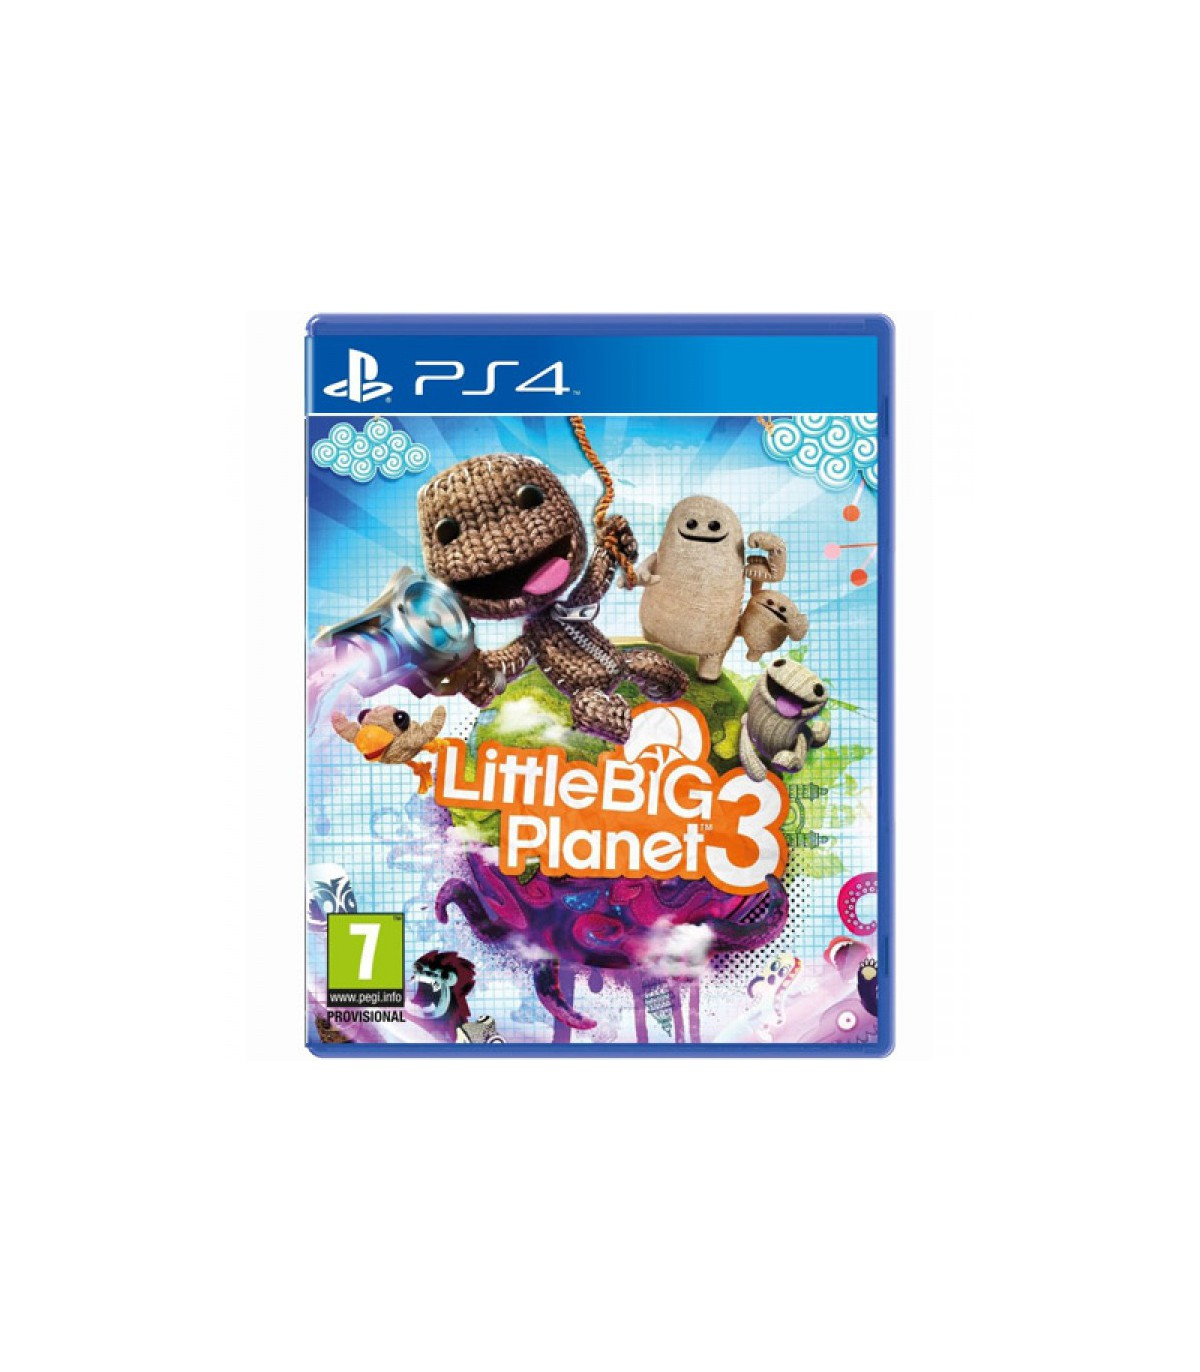 بازی Little Big Planet 3 - پلی استیشن 4